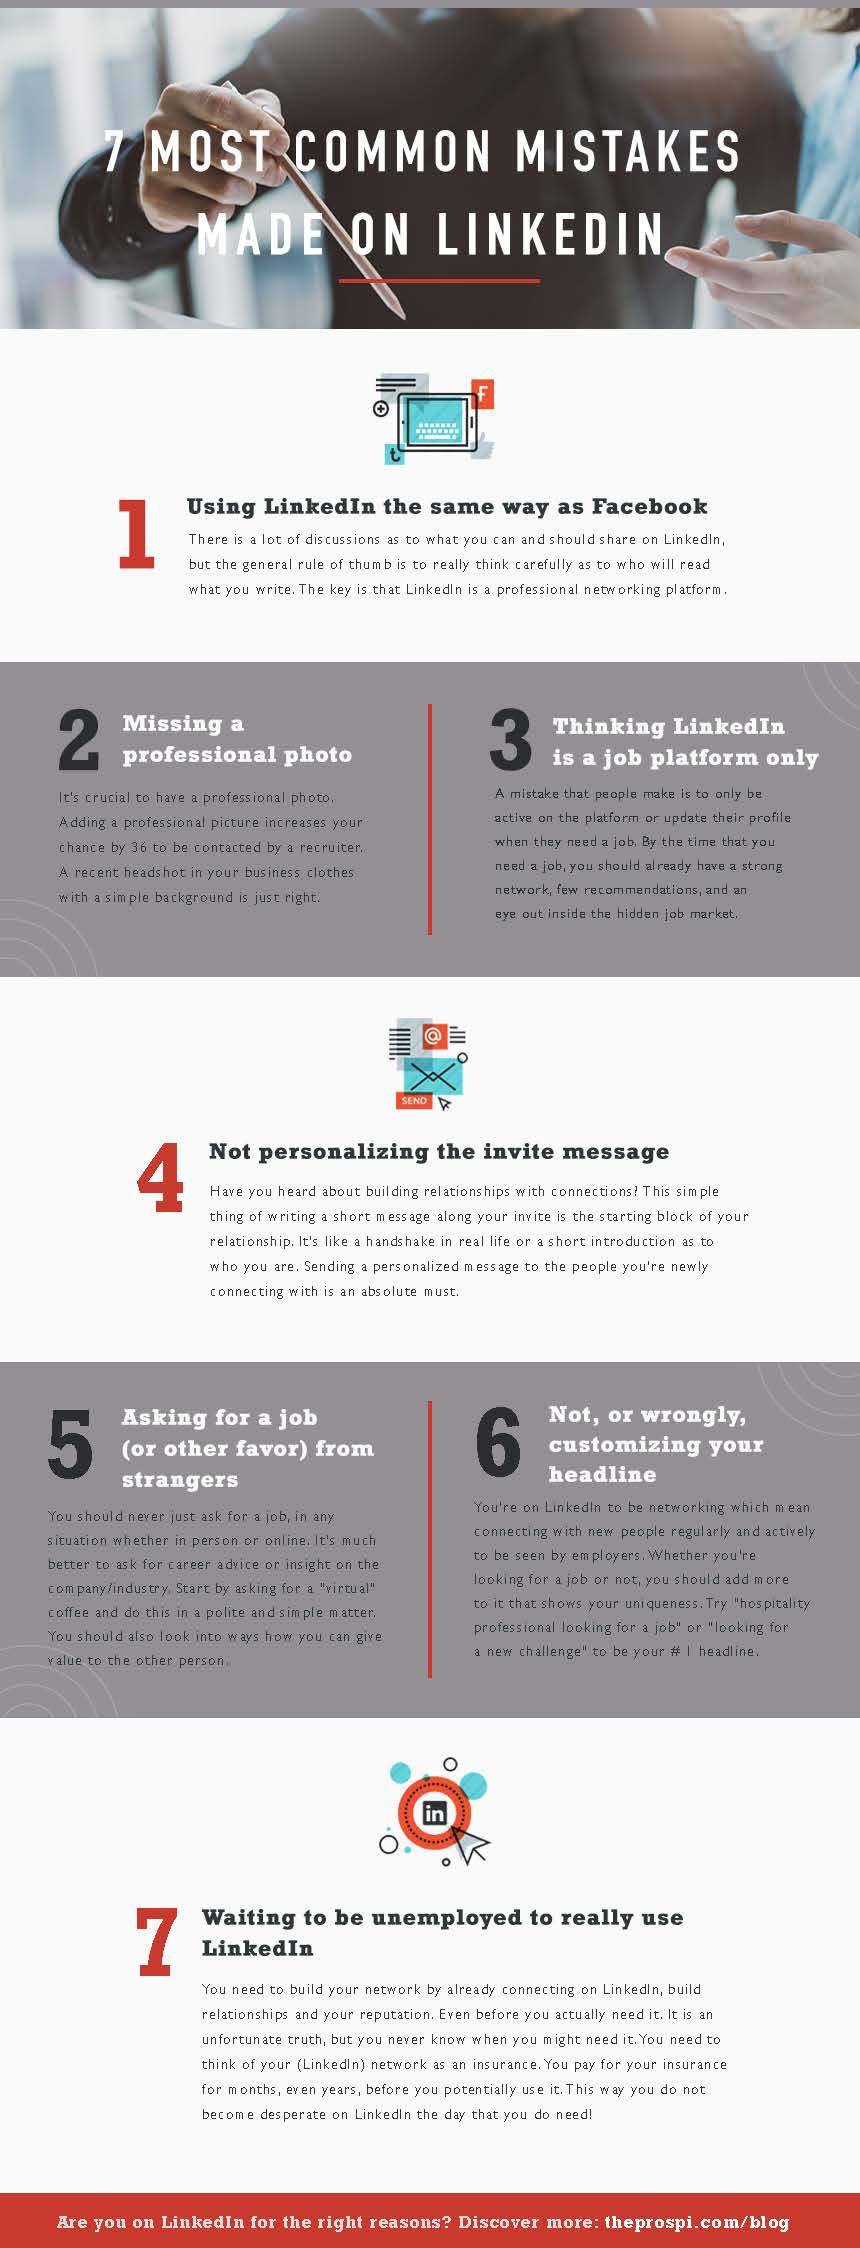 7 Common Linkedin Mistakes.jpg